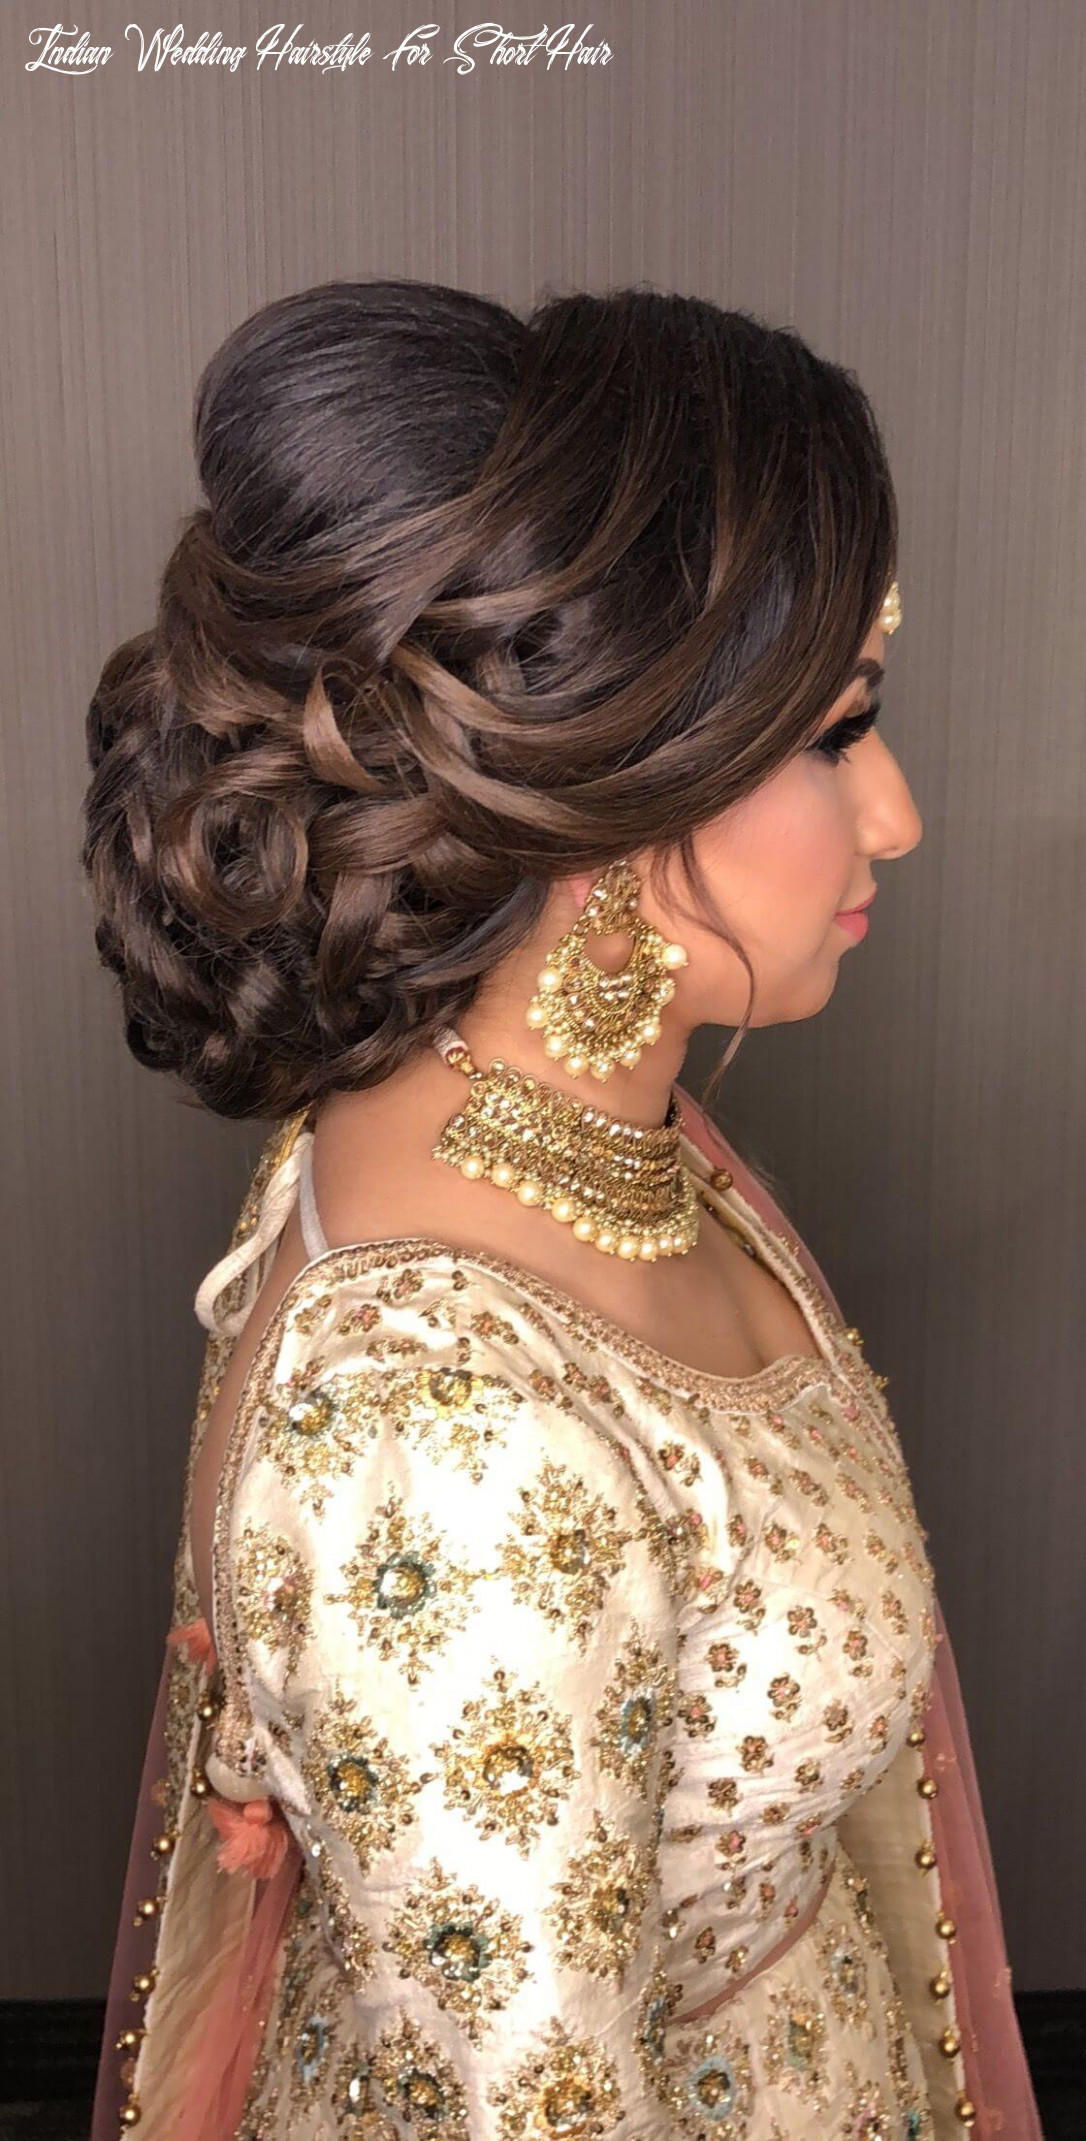 Hairstyles for short hair for indian wedding 10 indian wedding hairstyle for short hair